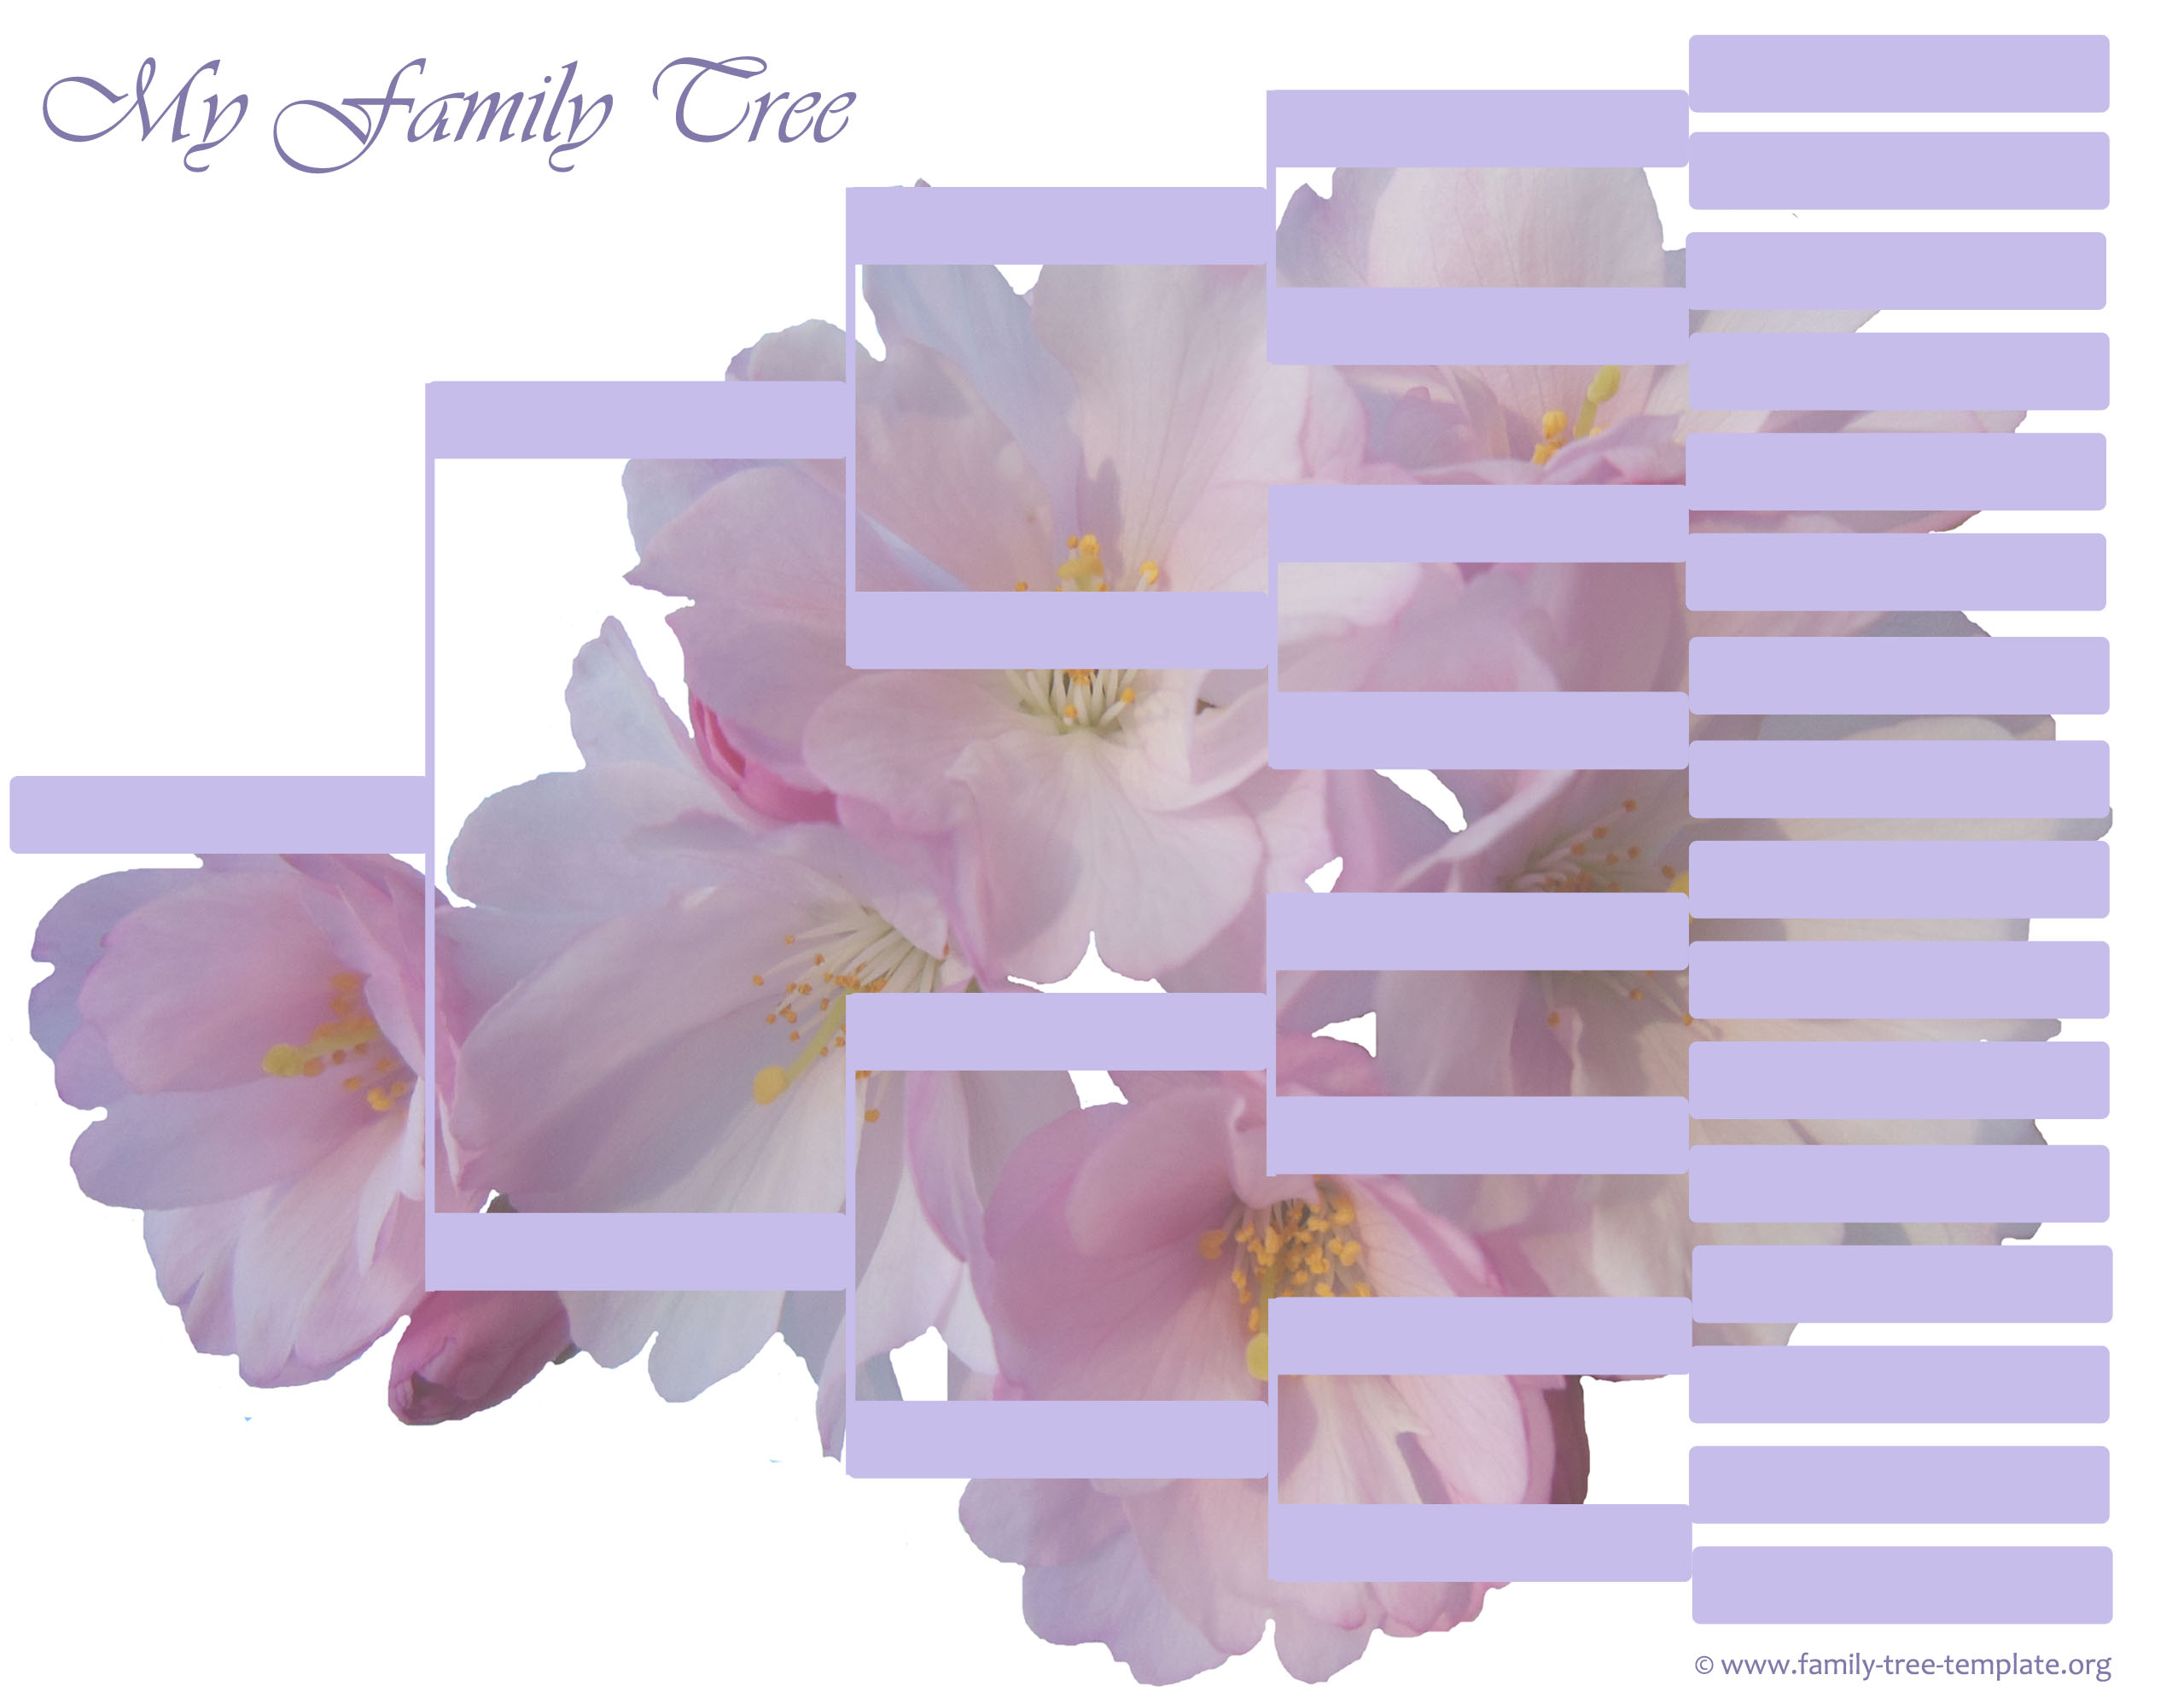 Fabulous Family Tree Forms and Easy Genealogy Methods